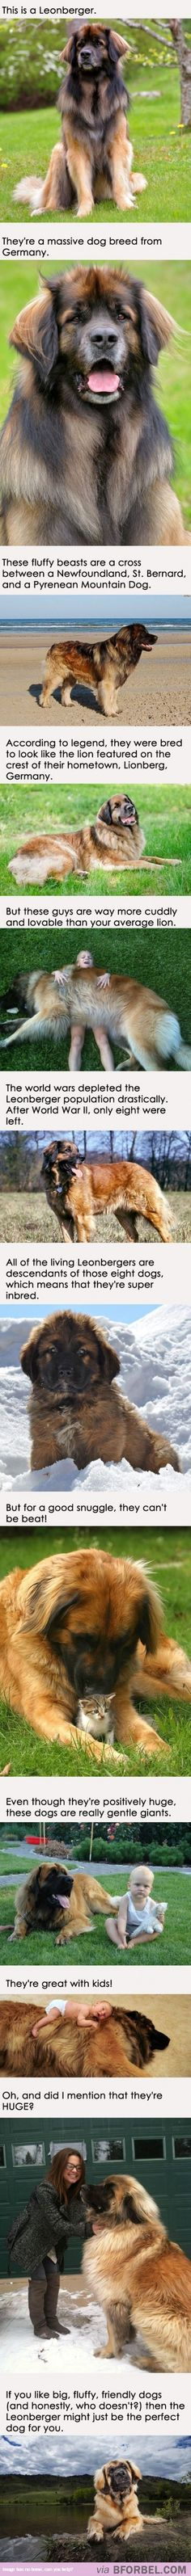 Adopt A Leonberger Today!  We are fortunate that they are still around. During WWII, they were killed off because no one had $ to feed them